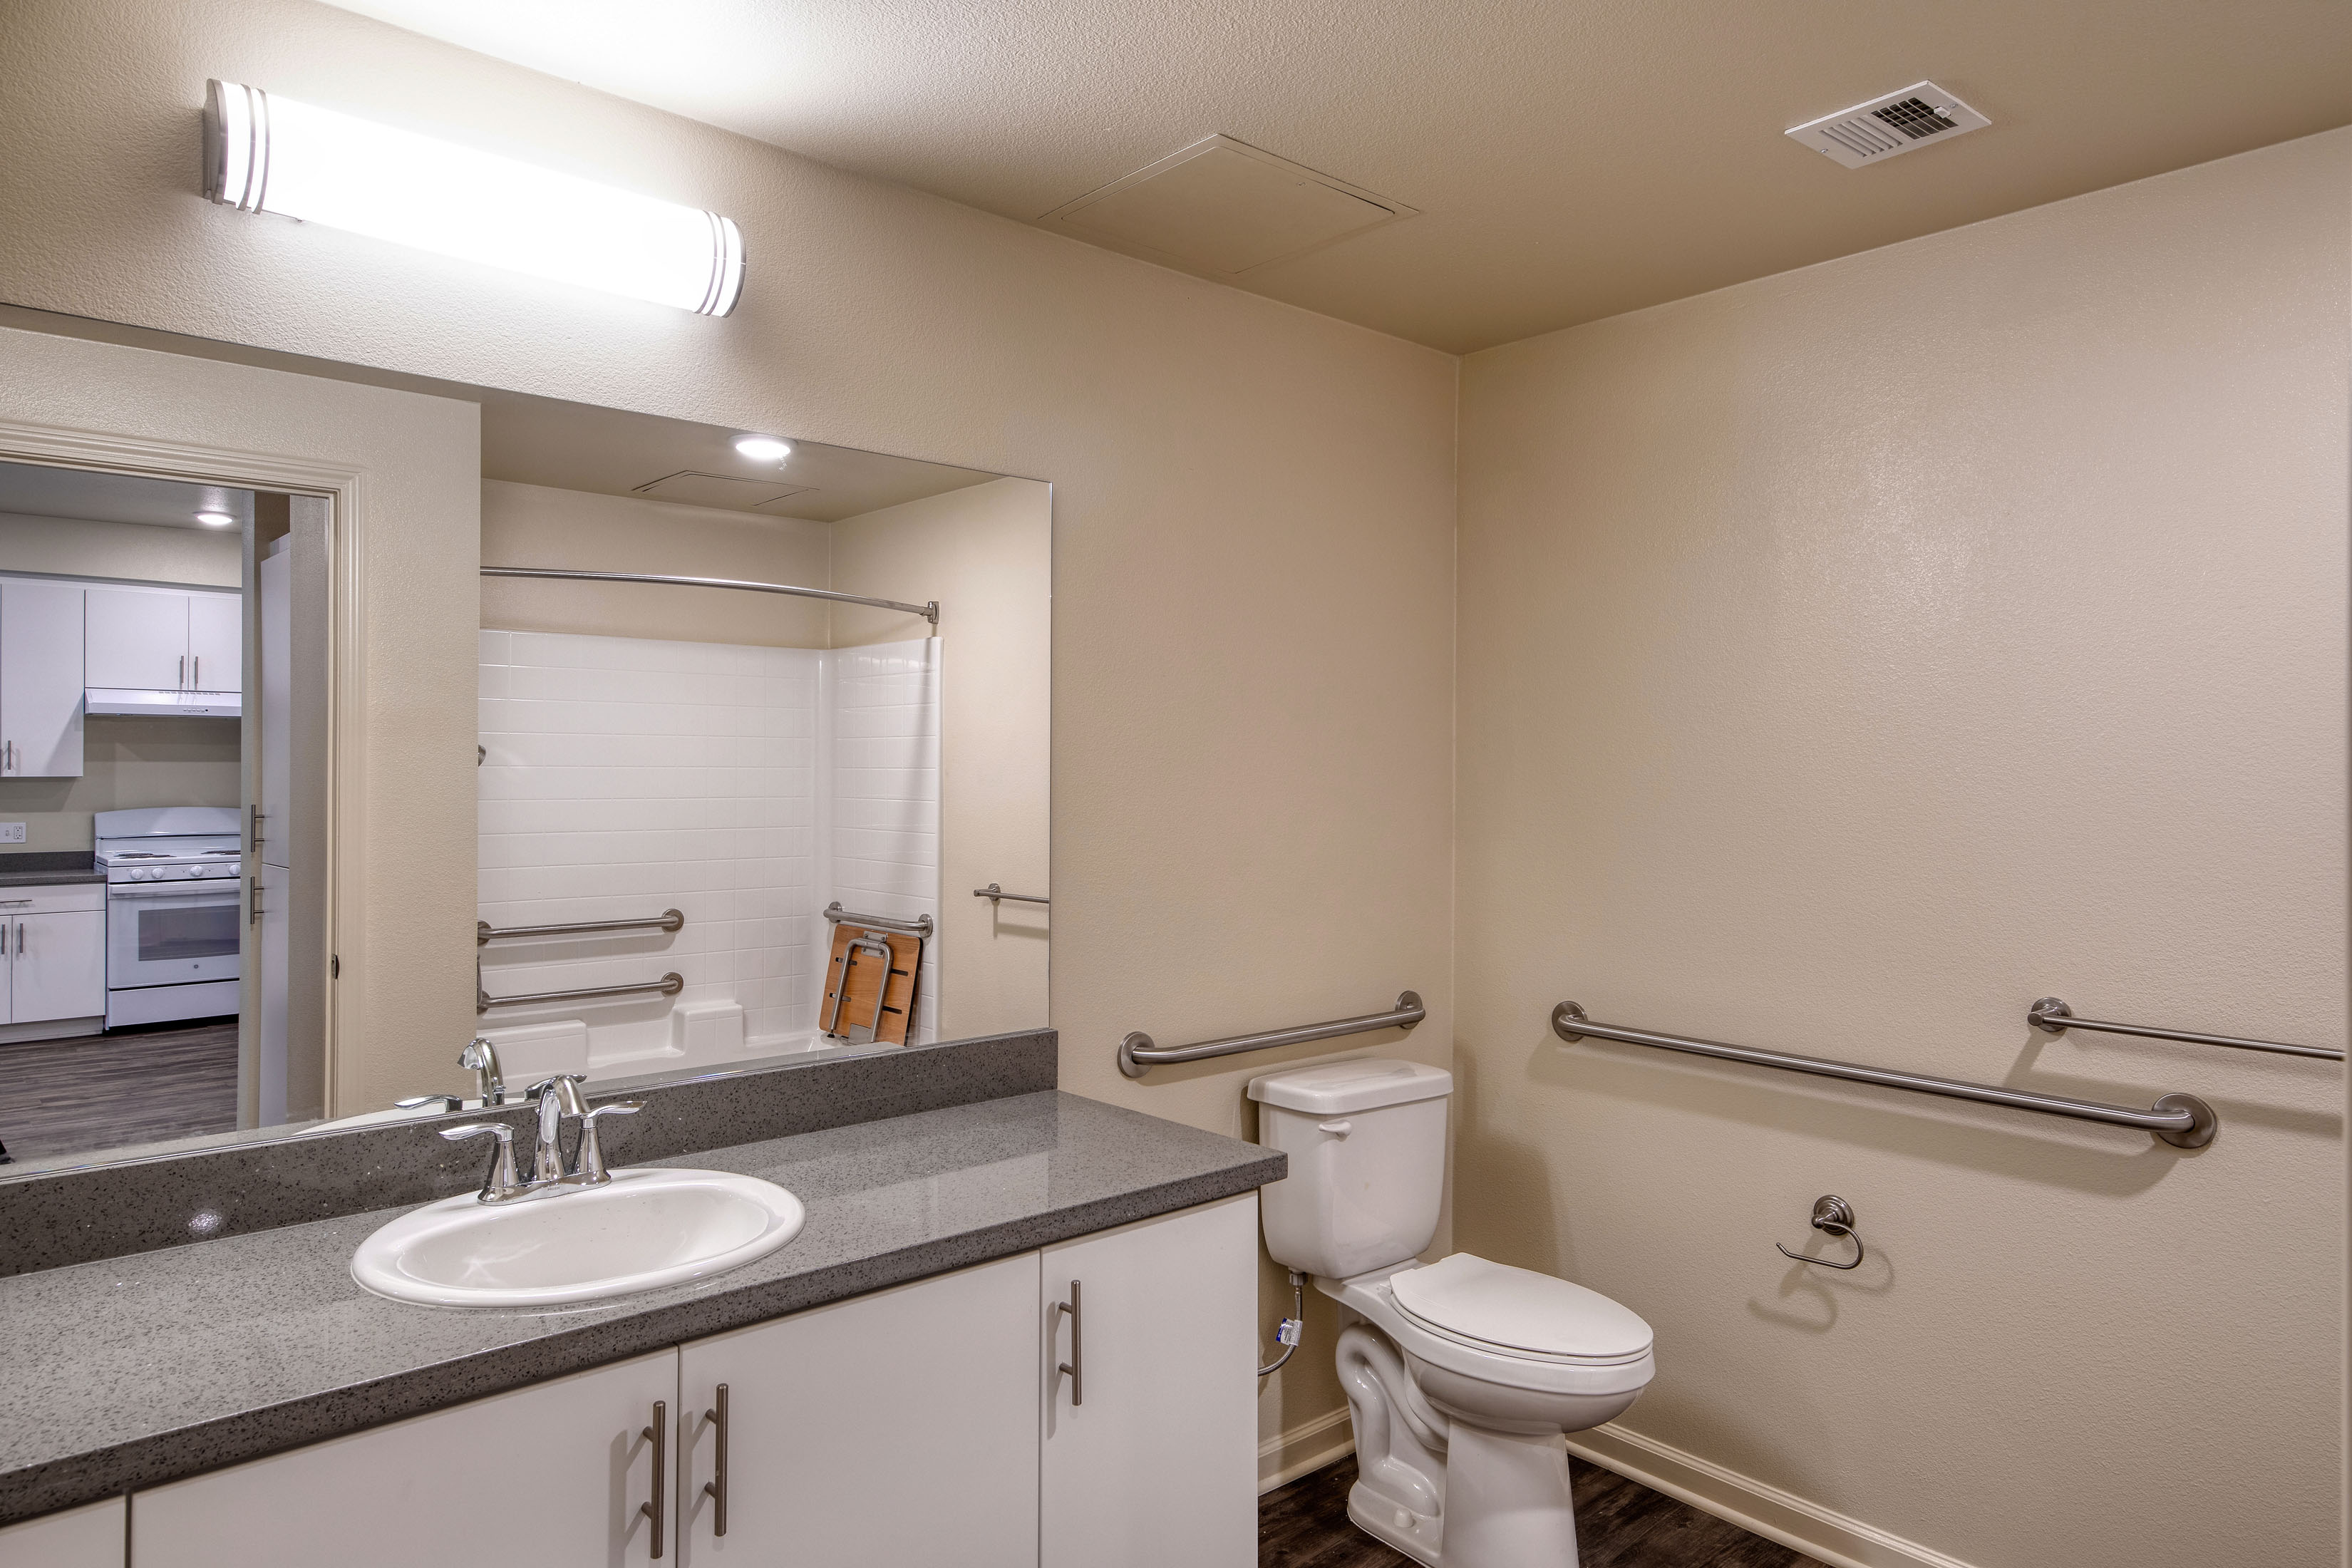 C&C_Unit102_Bathroom1_0182a-11x8